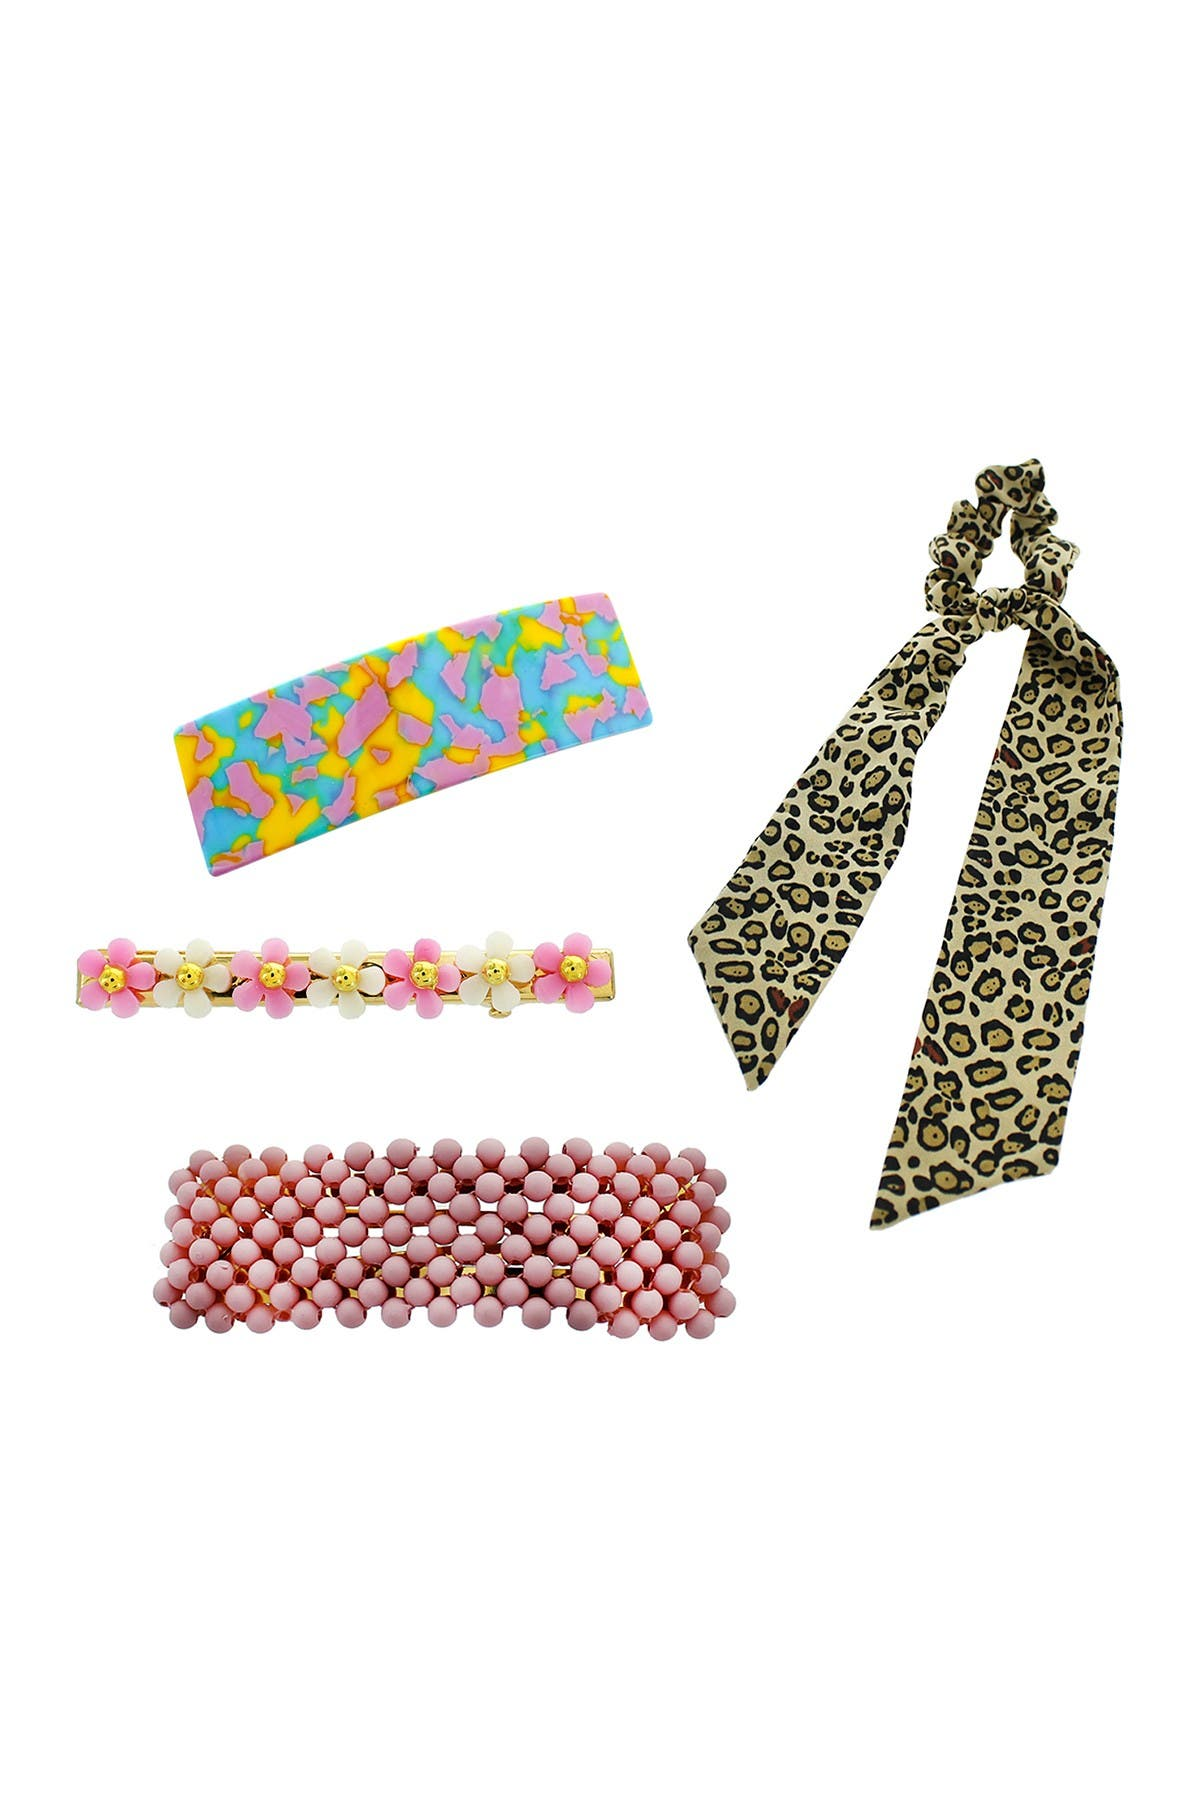 Image of Panacea Clip & Hair Scarf 4-Piece Set